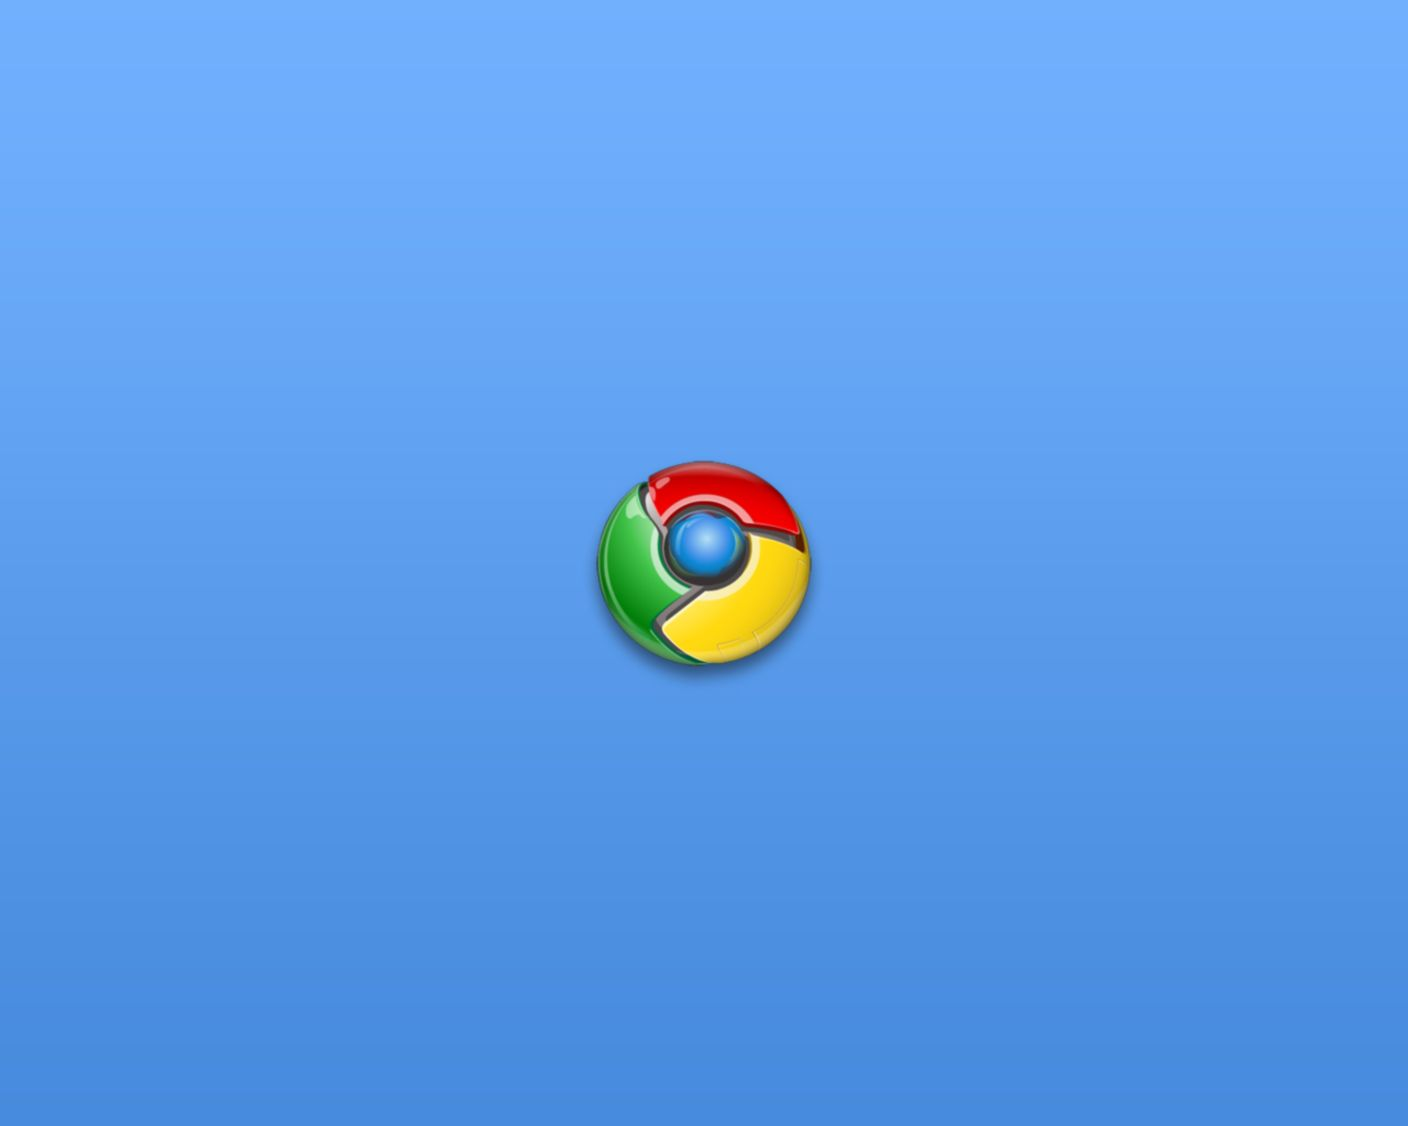 Download free HD Google Chrome HD 1280×1024 Wallpaper, image